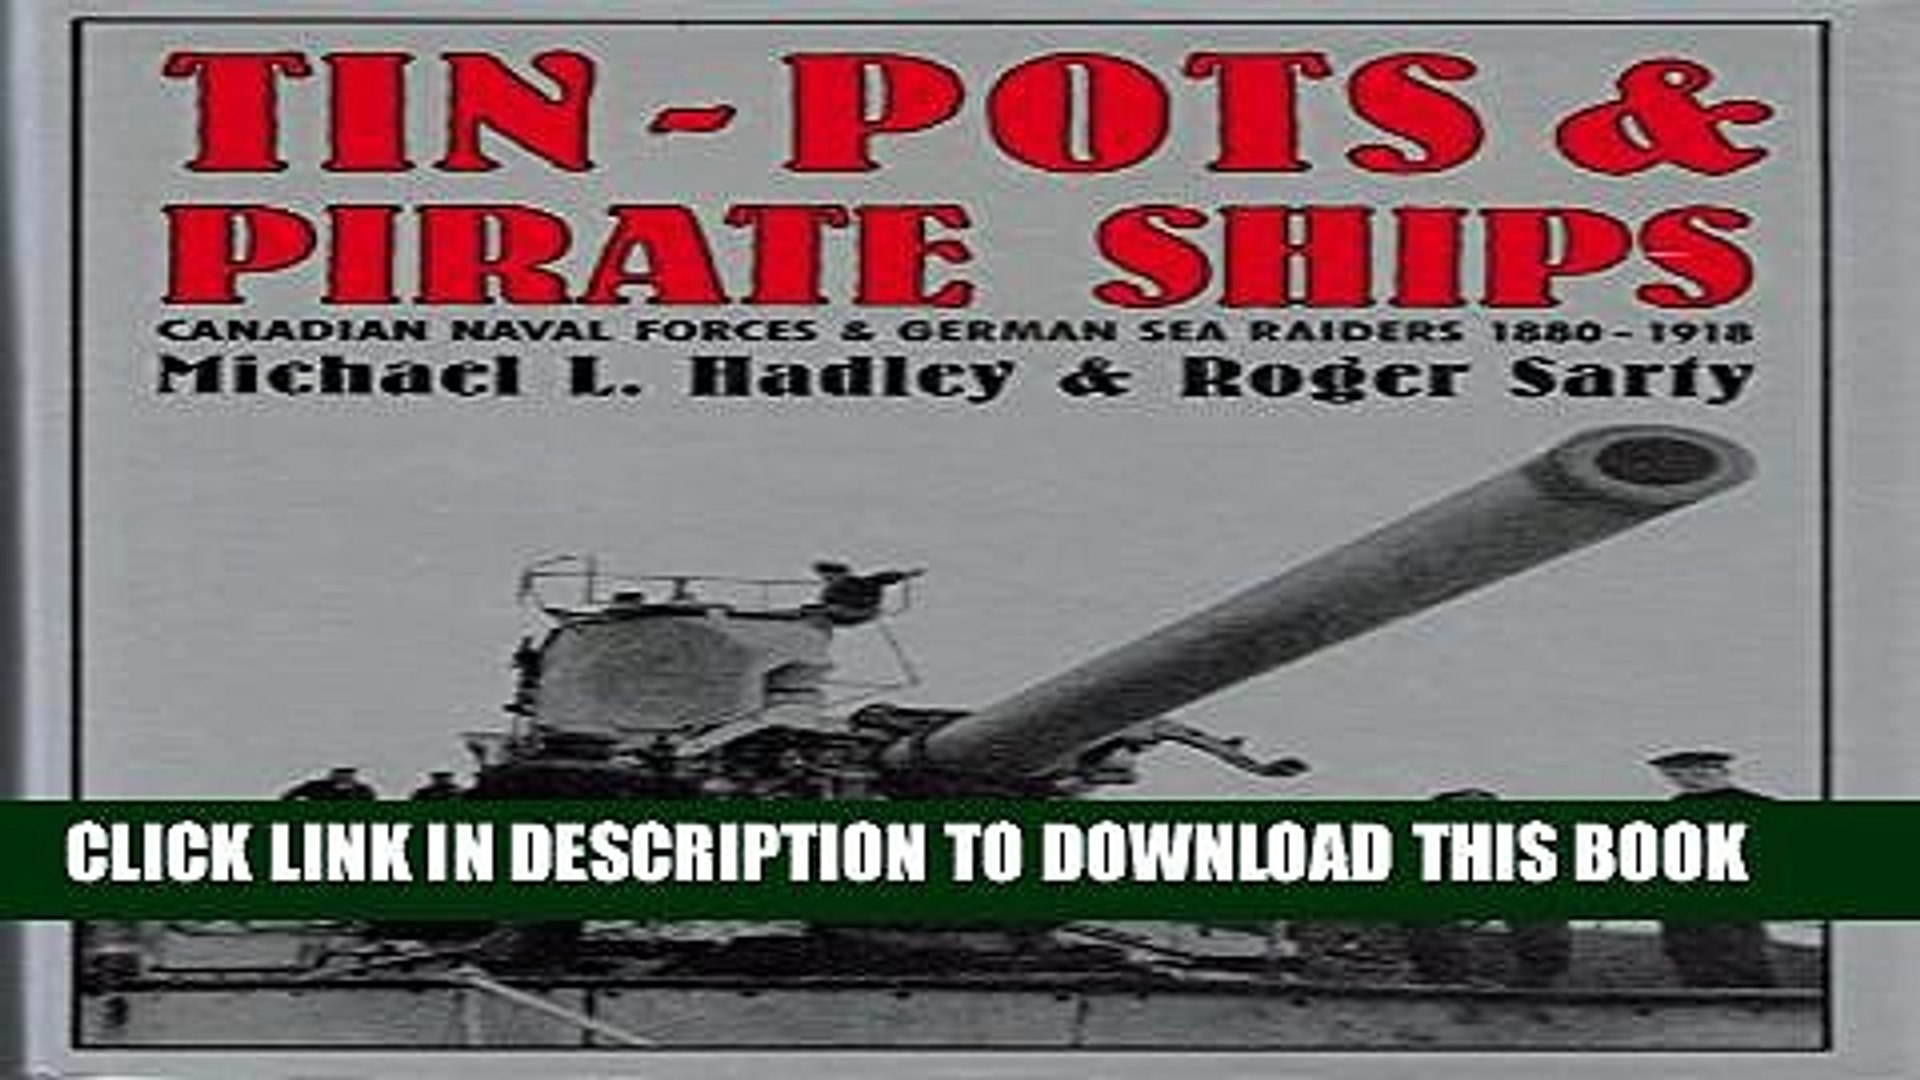 [PDF] Tin-Pots and Pirate Ships: Canadian Naval Forces and German Sea Raiders 1880-1918 Popular